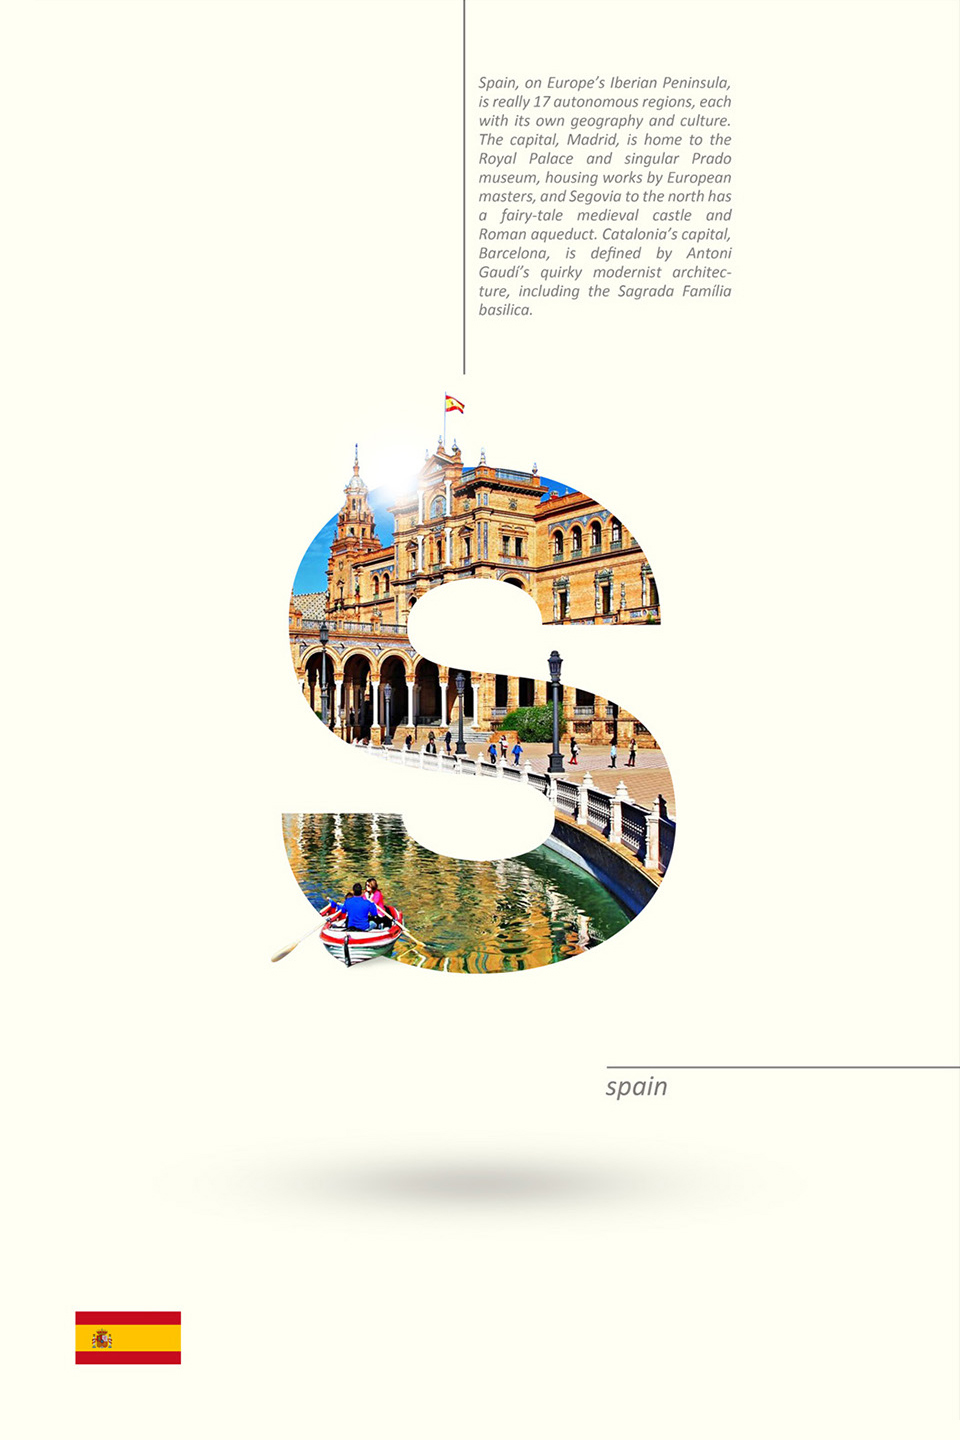 Beautiful Alphabet Series Of Countries And Their Iconic Landmarks - Spain